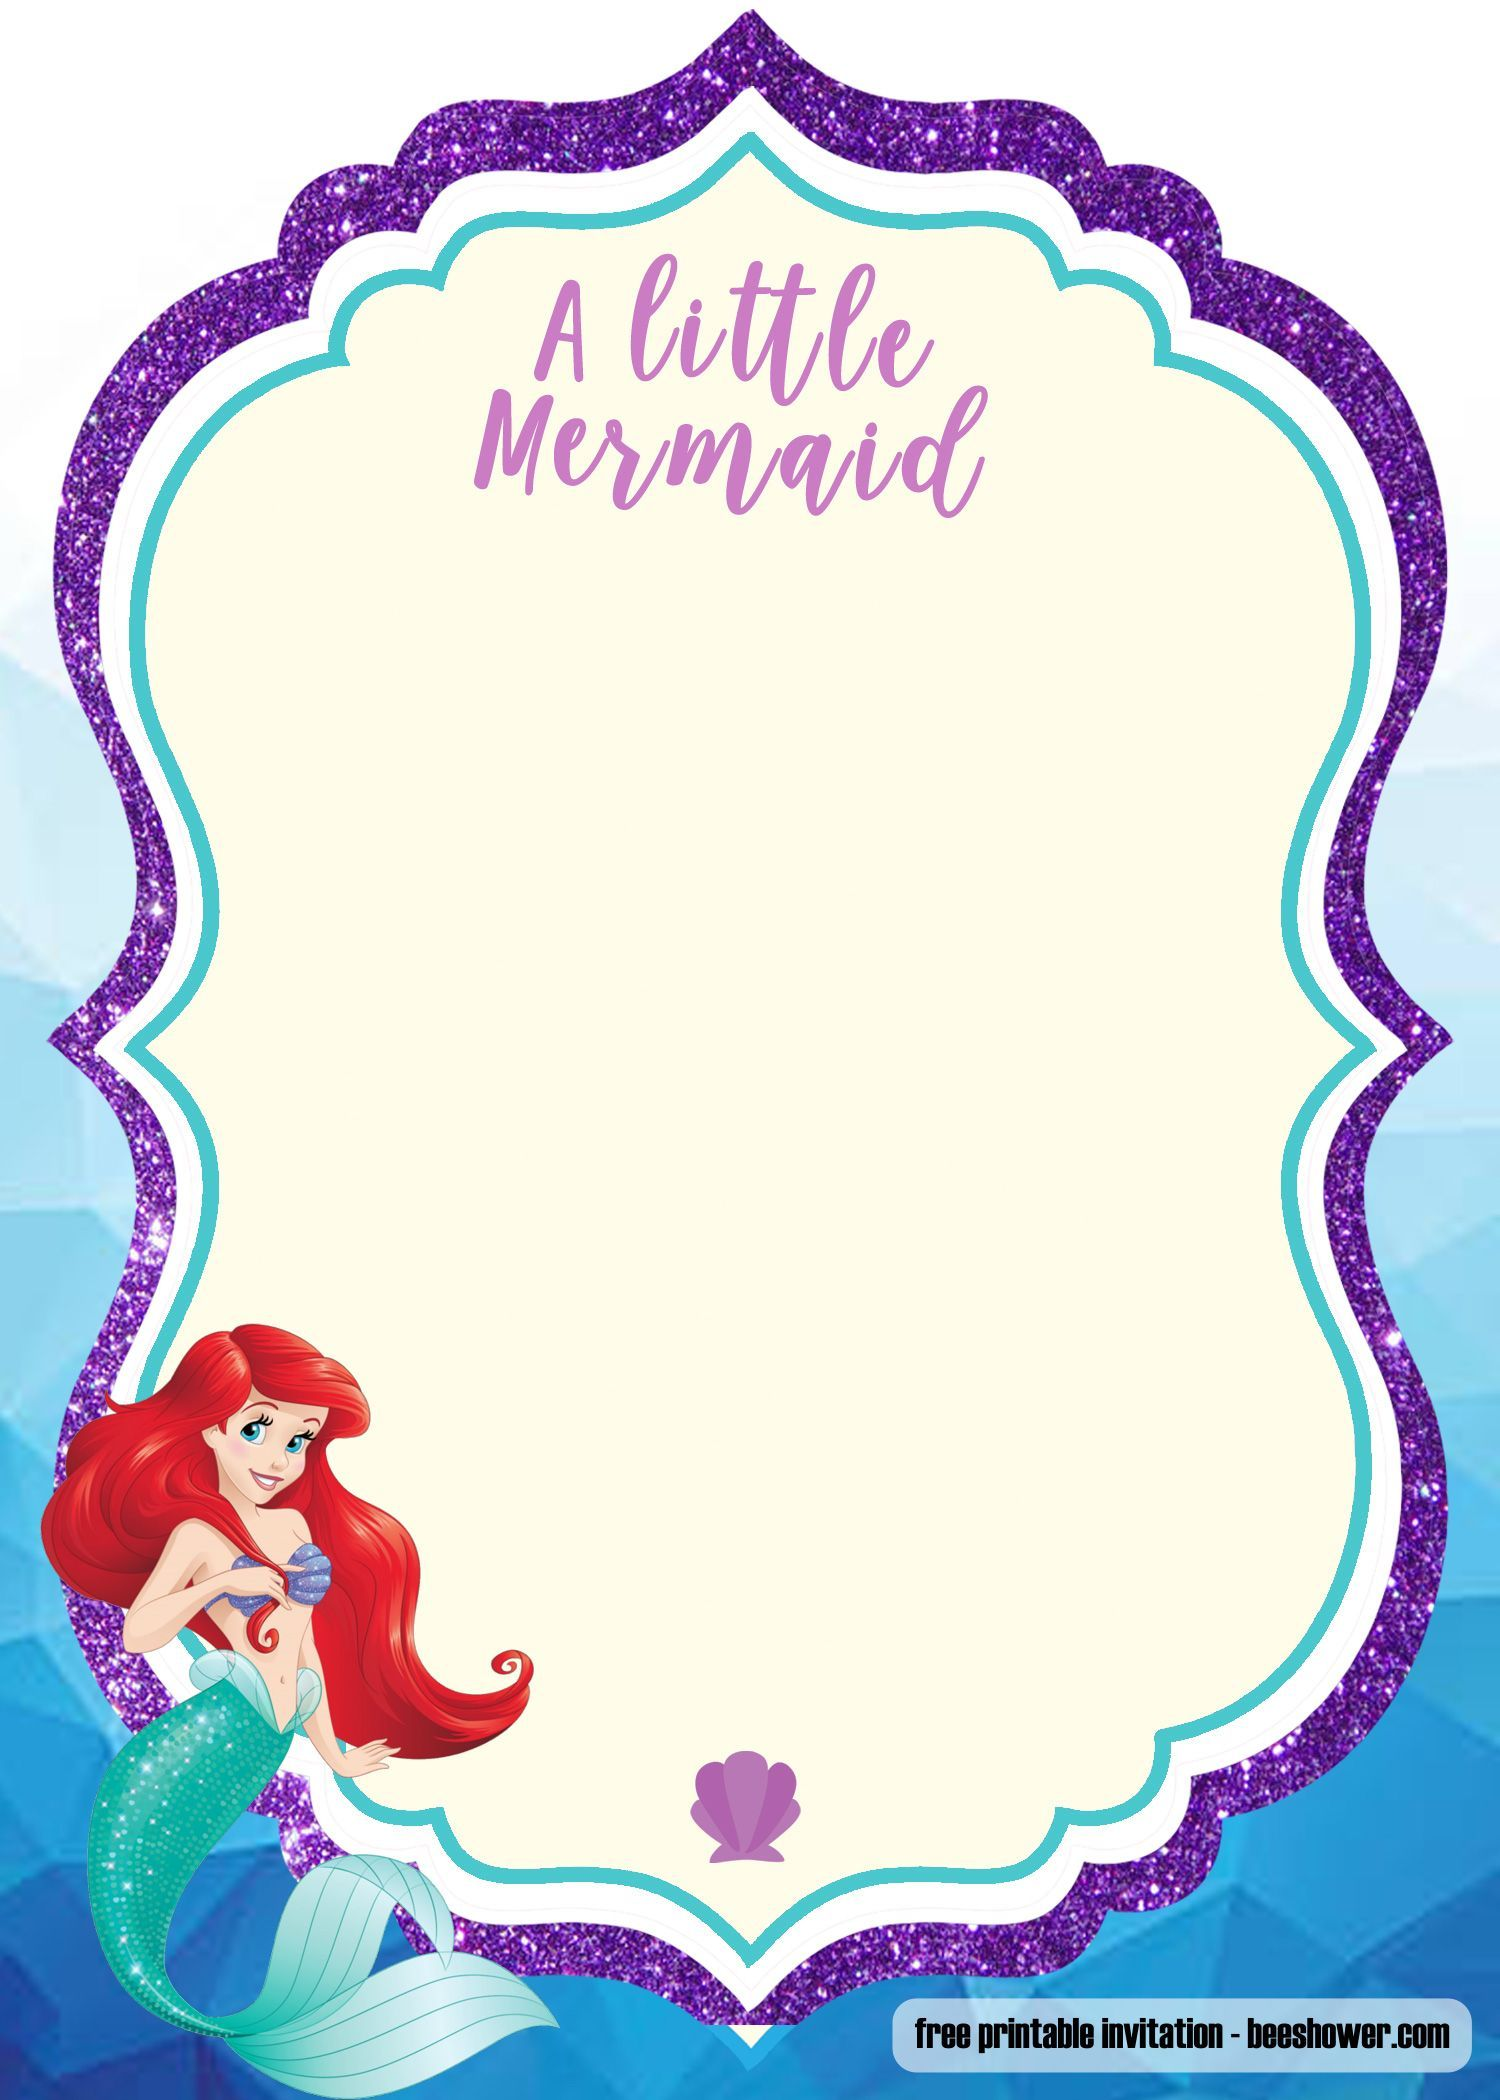 photo about Printable Mermaid Baby Shower Invitations referred to as No cost Printable Mermaid Little one Shower Invitation No cost